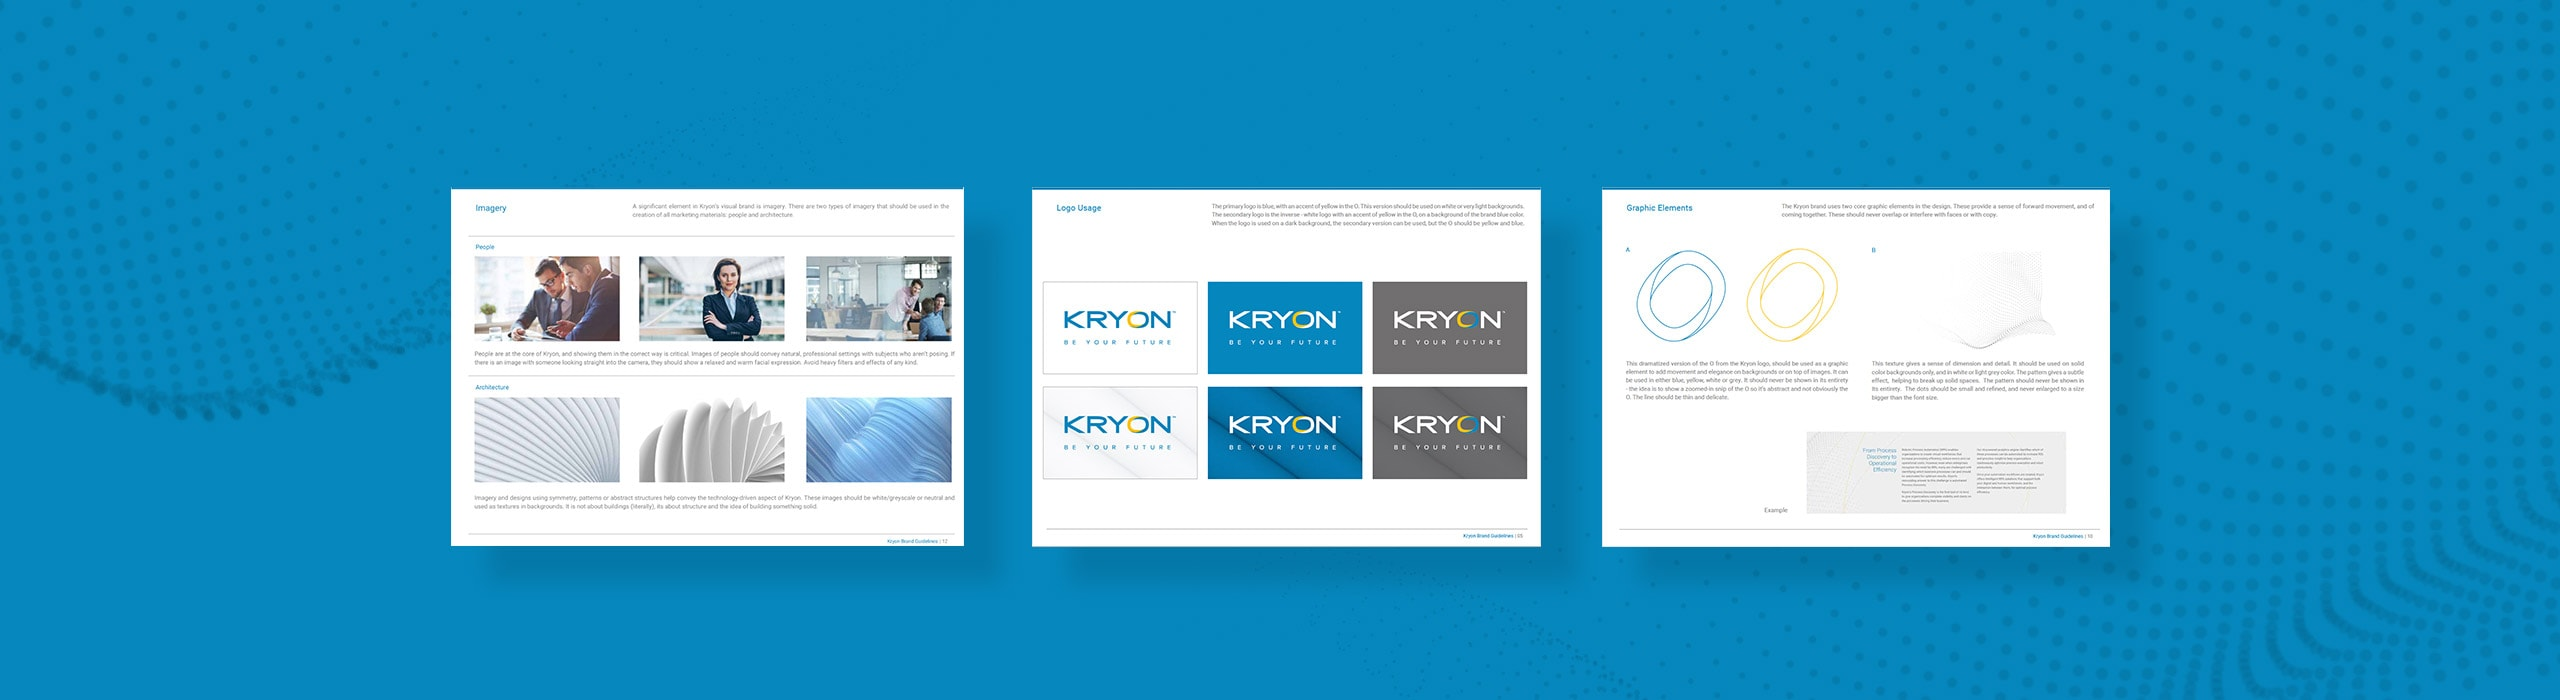 Kryon - 15 - Natie Branding Agency